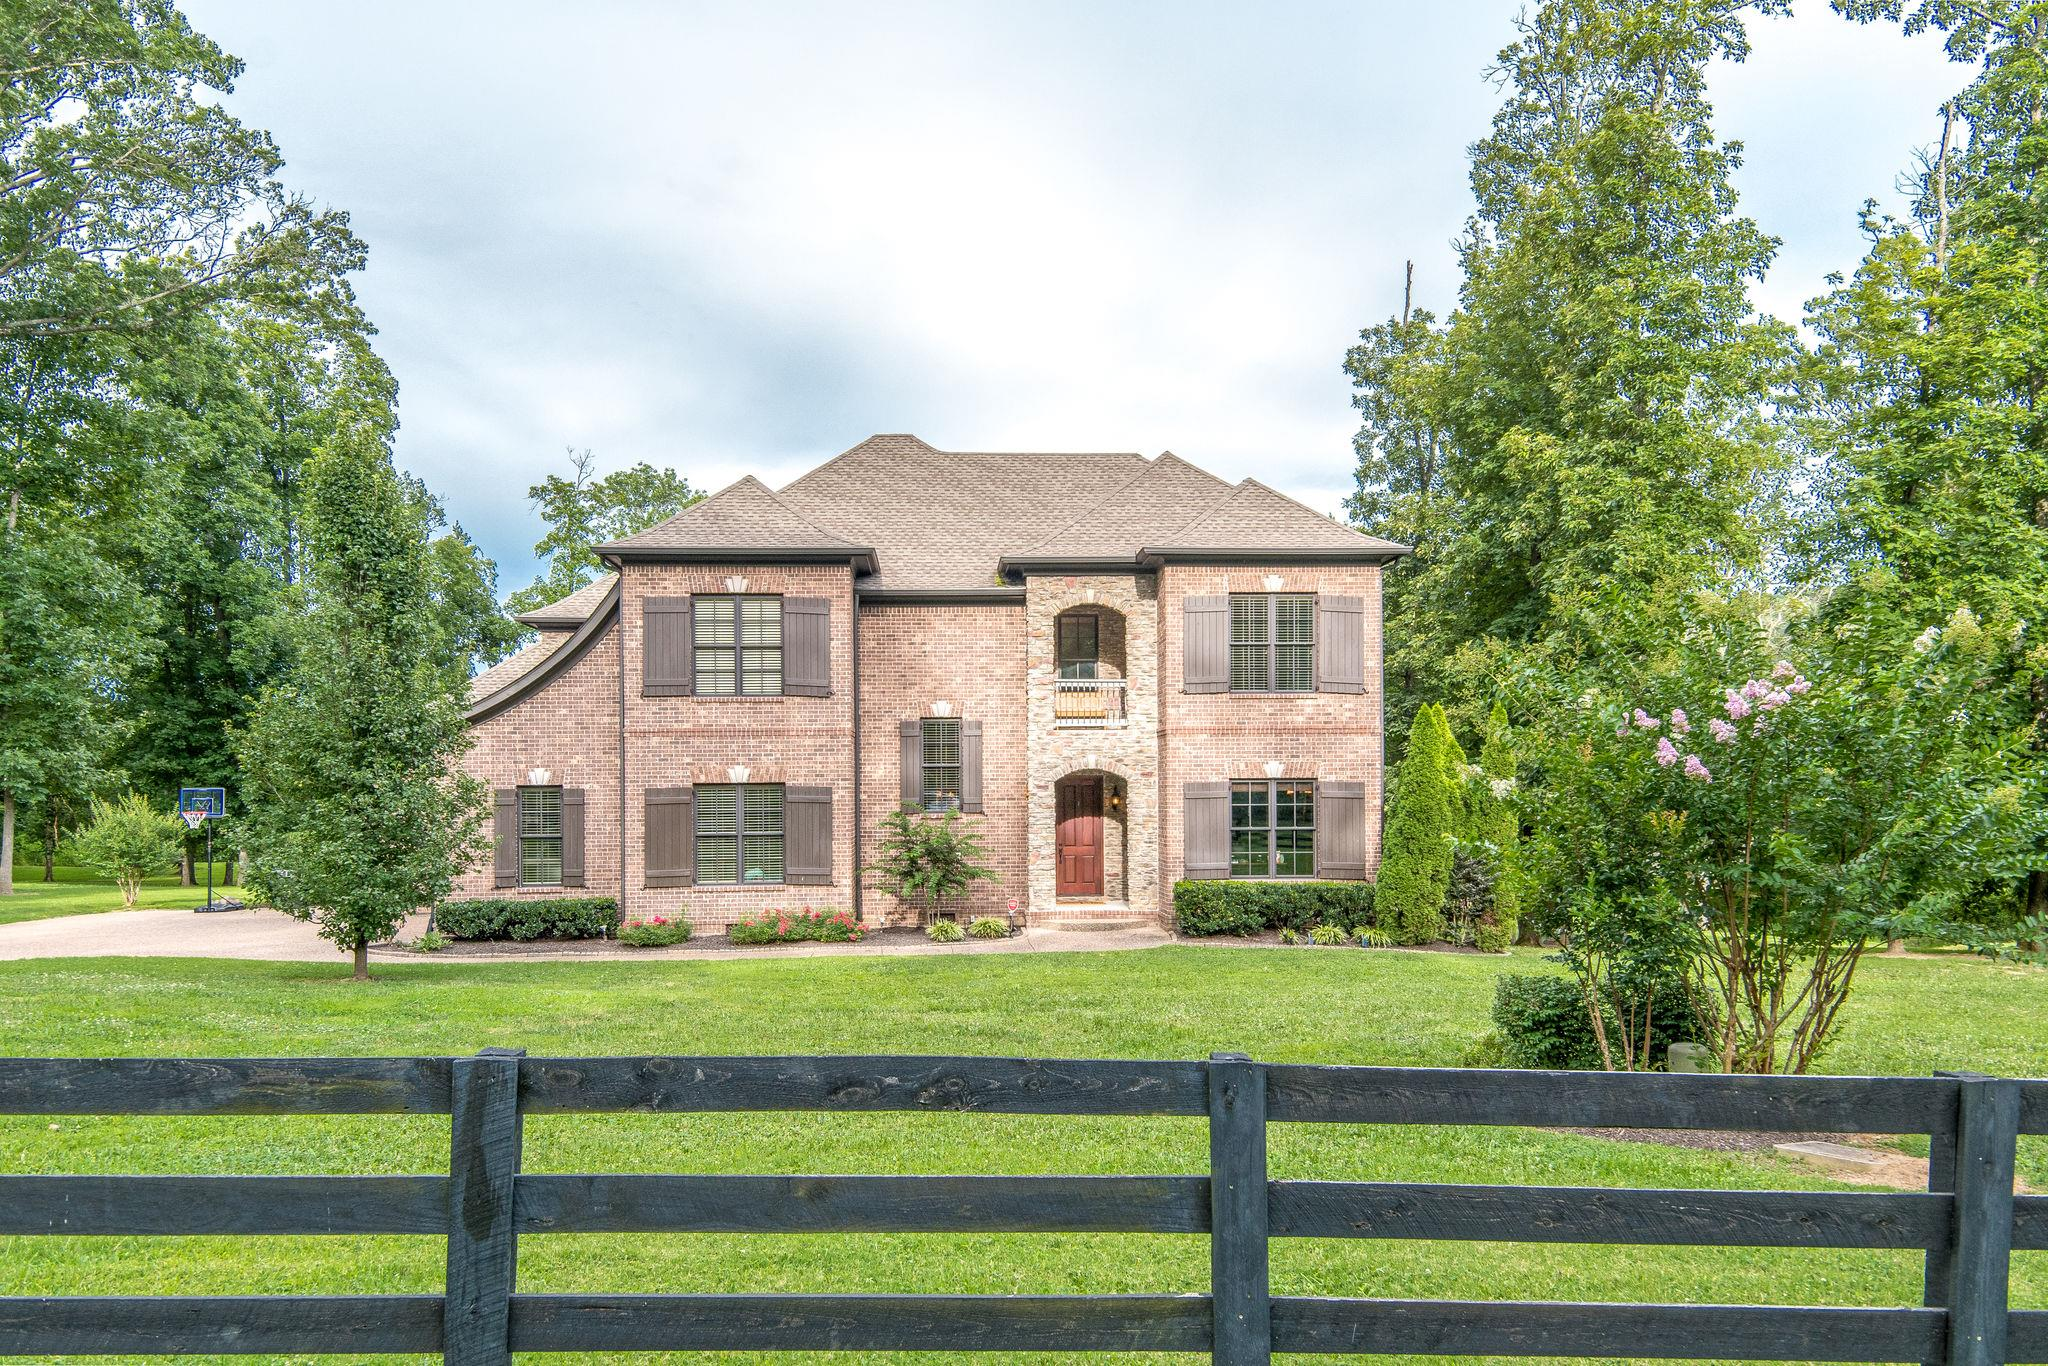 3120 Chase Point Dr, Franklin, TN 37067 - Franklin, TN real estate listing